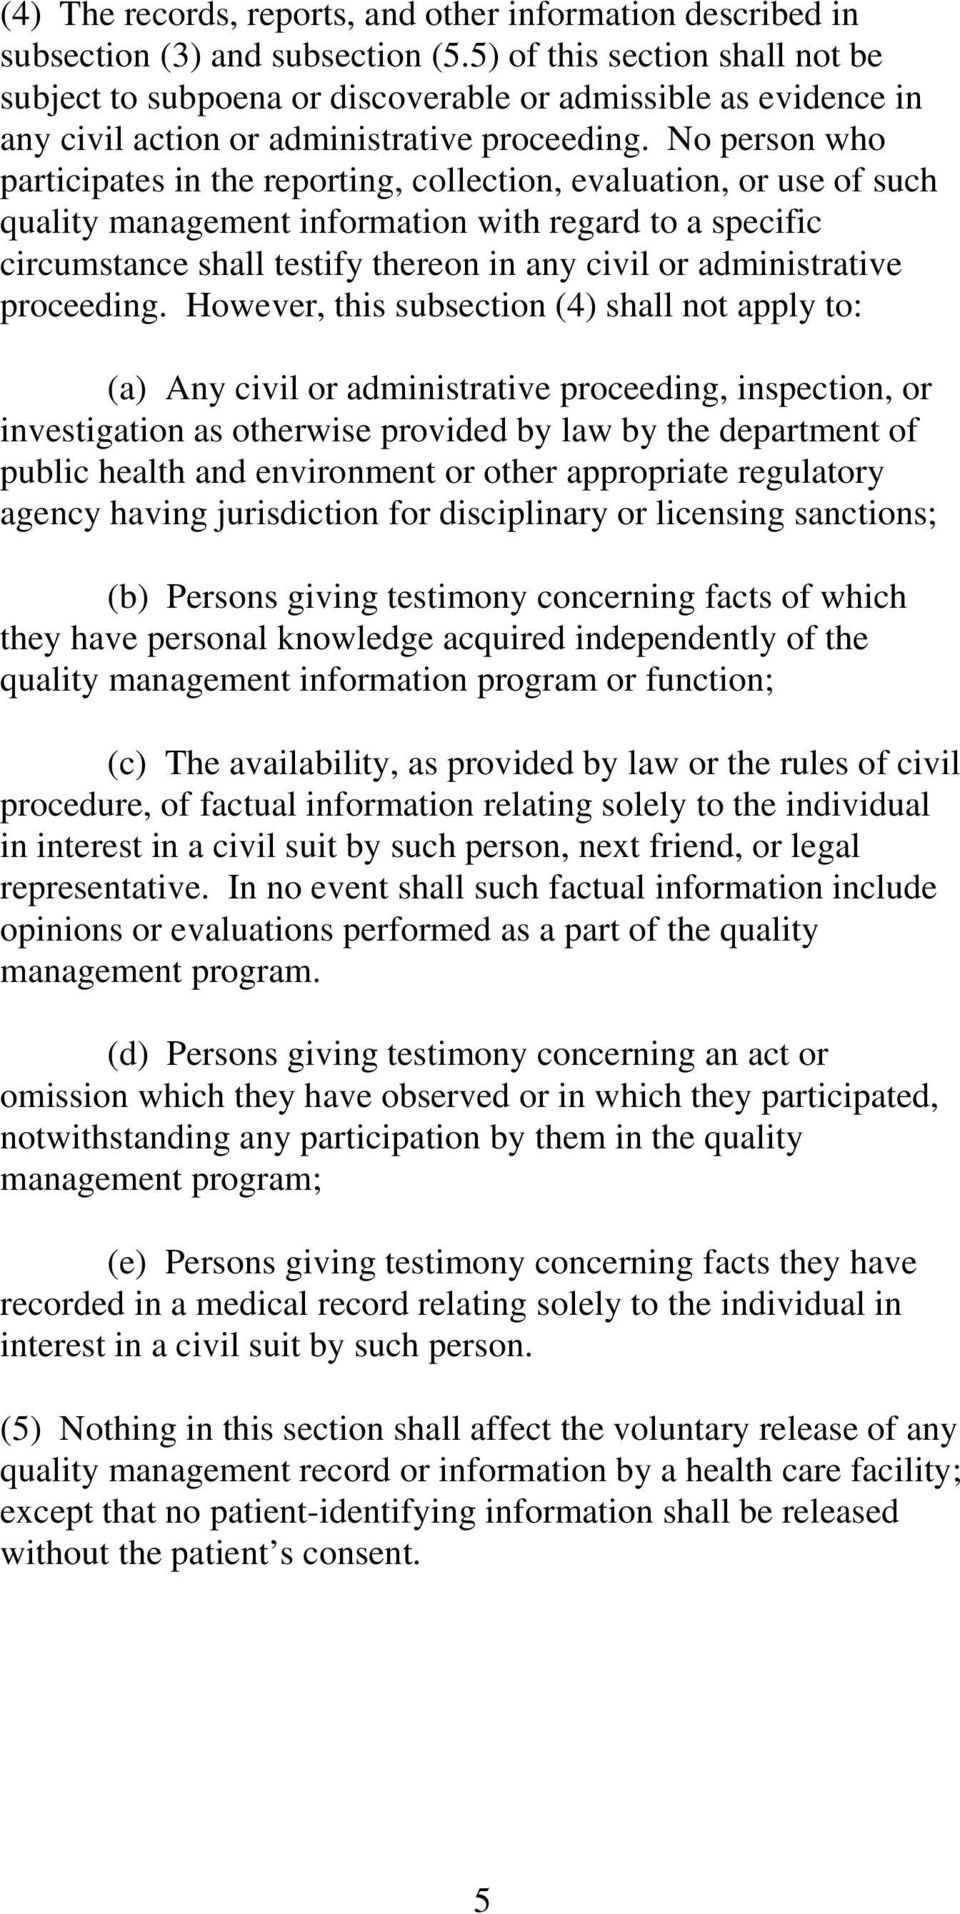 No person who participates in the reporting, collection, evaluation, or use of such quality management information with regard to a specific circumstance shall testify thereon in any civil or